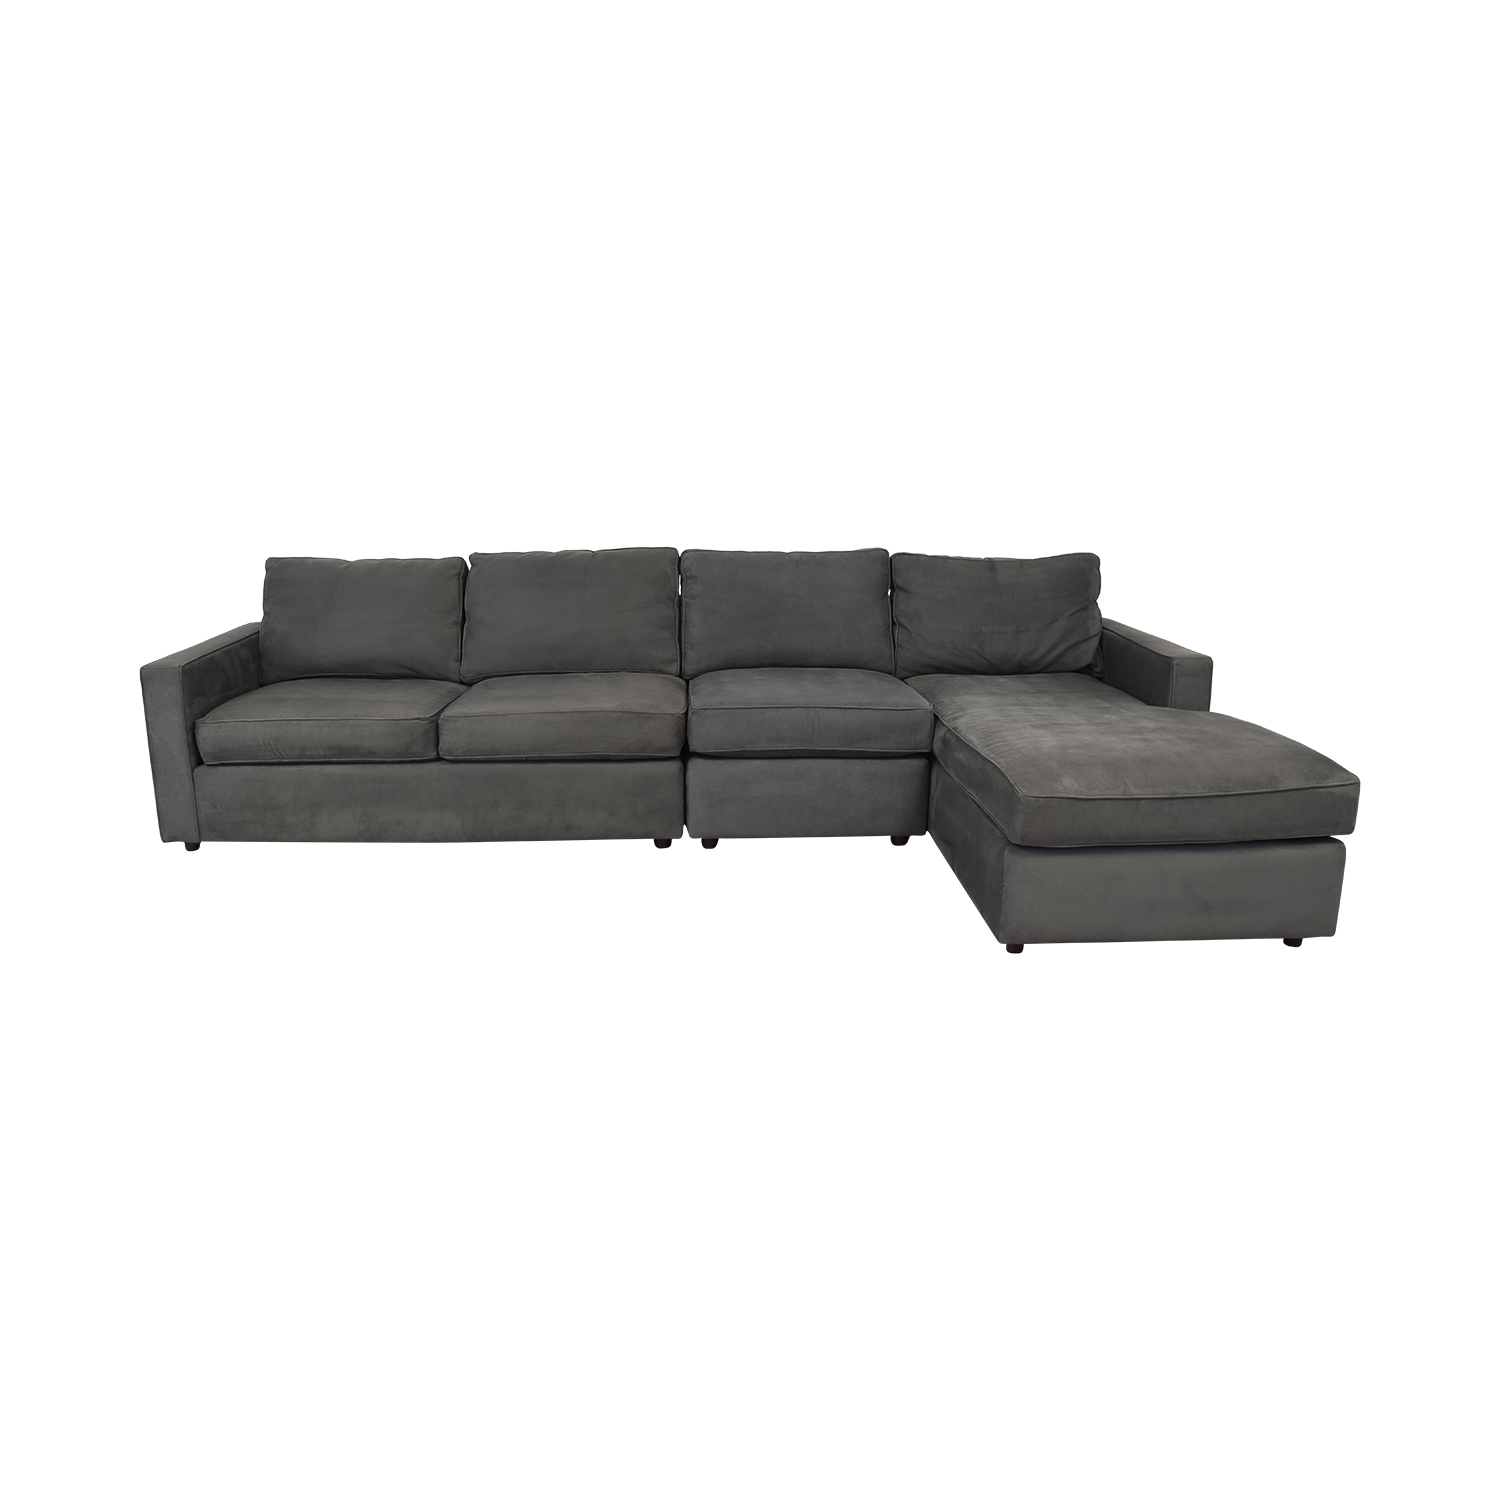 shop Room & Board Room & Board Modular Sectional Sofa online